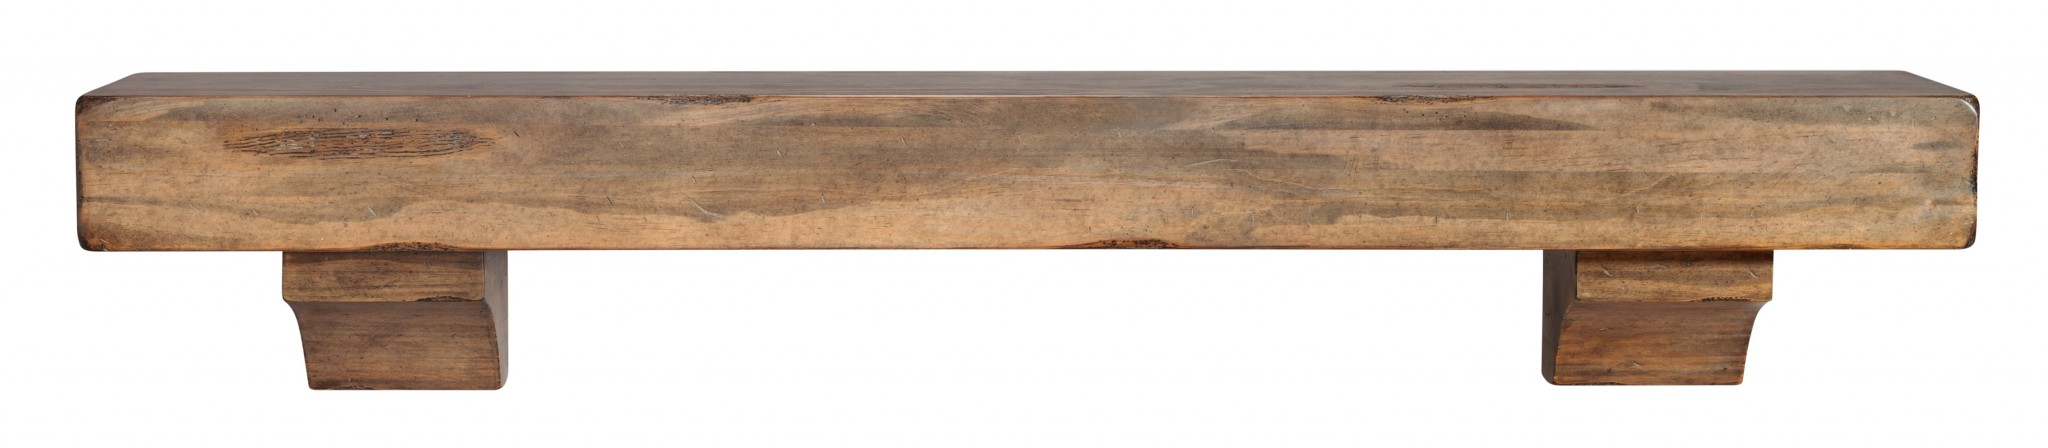 "72"" Contemporary Dune Rustic Distressed Pine Wood Mantel Shelf"